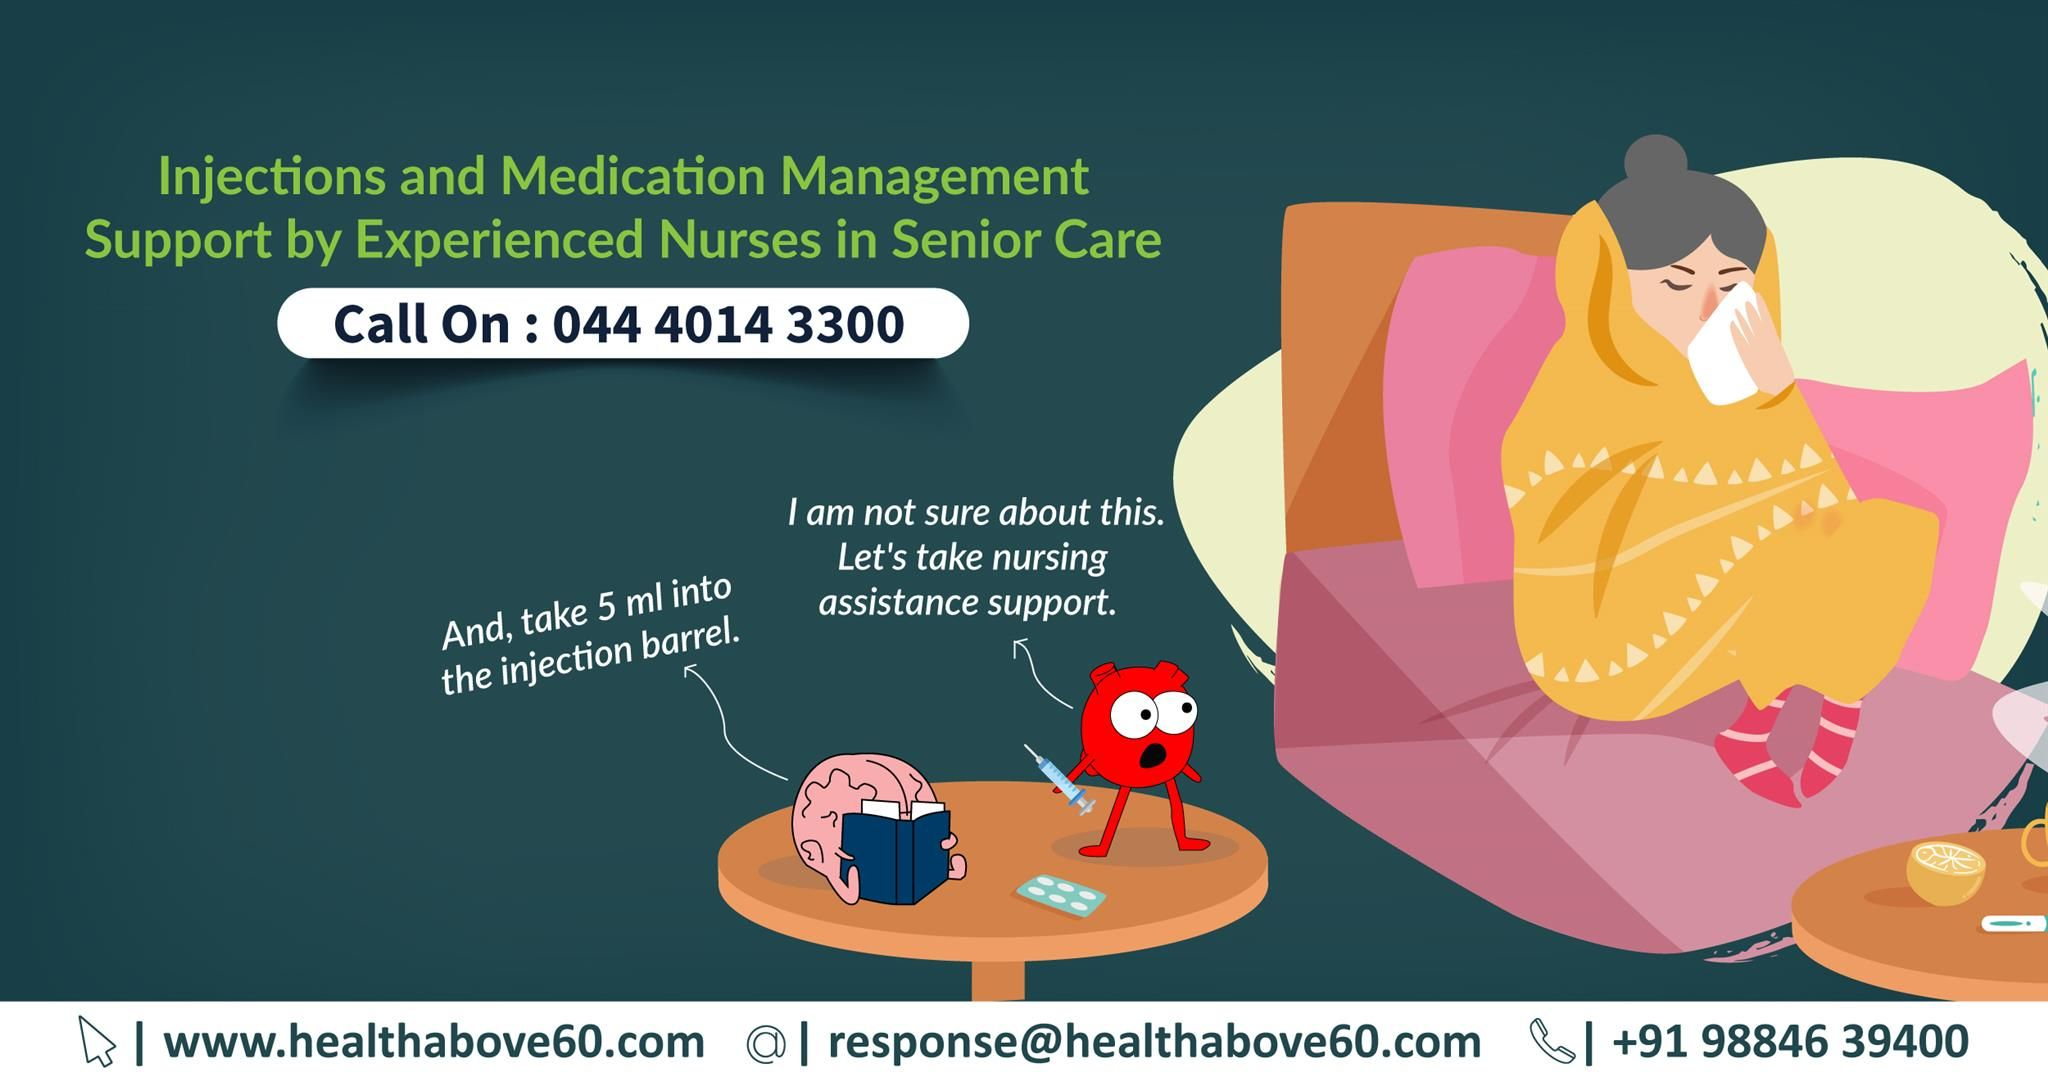 Avail superior support in injections and medication